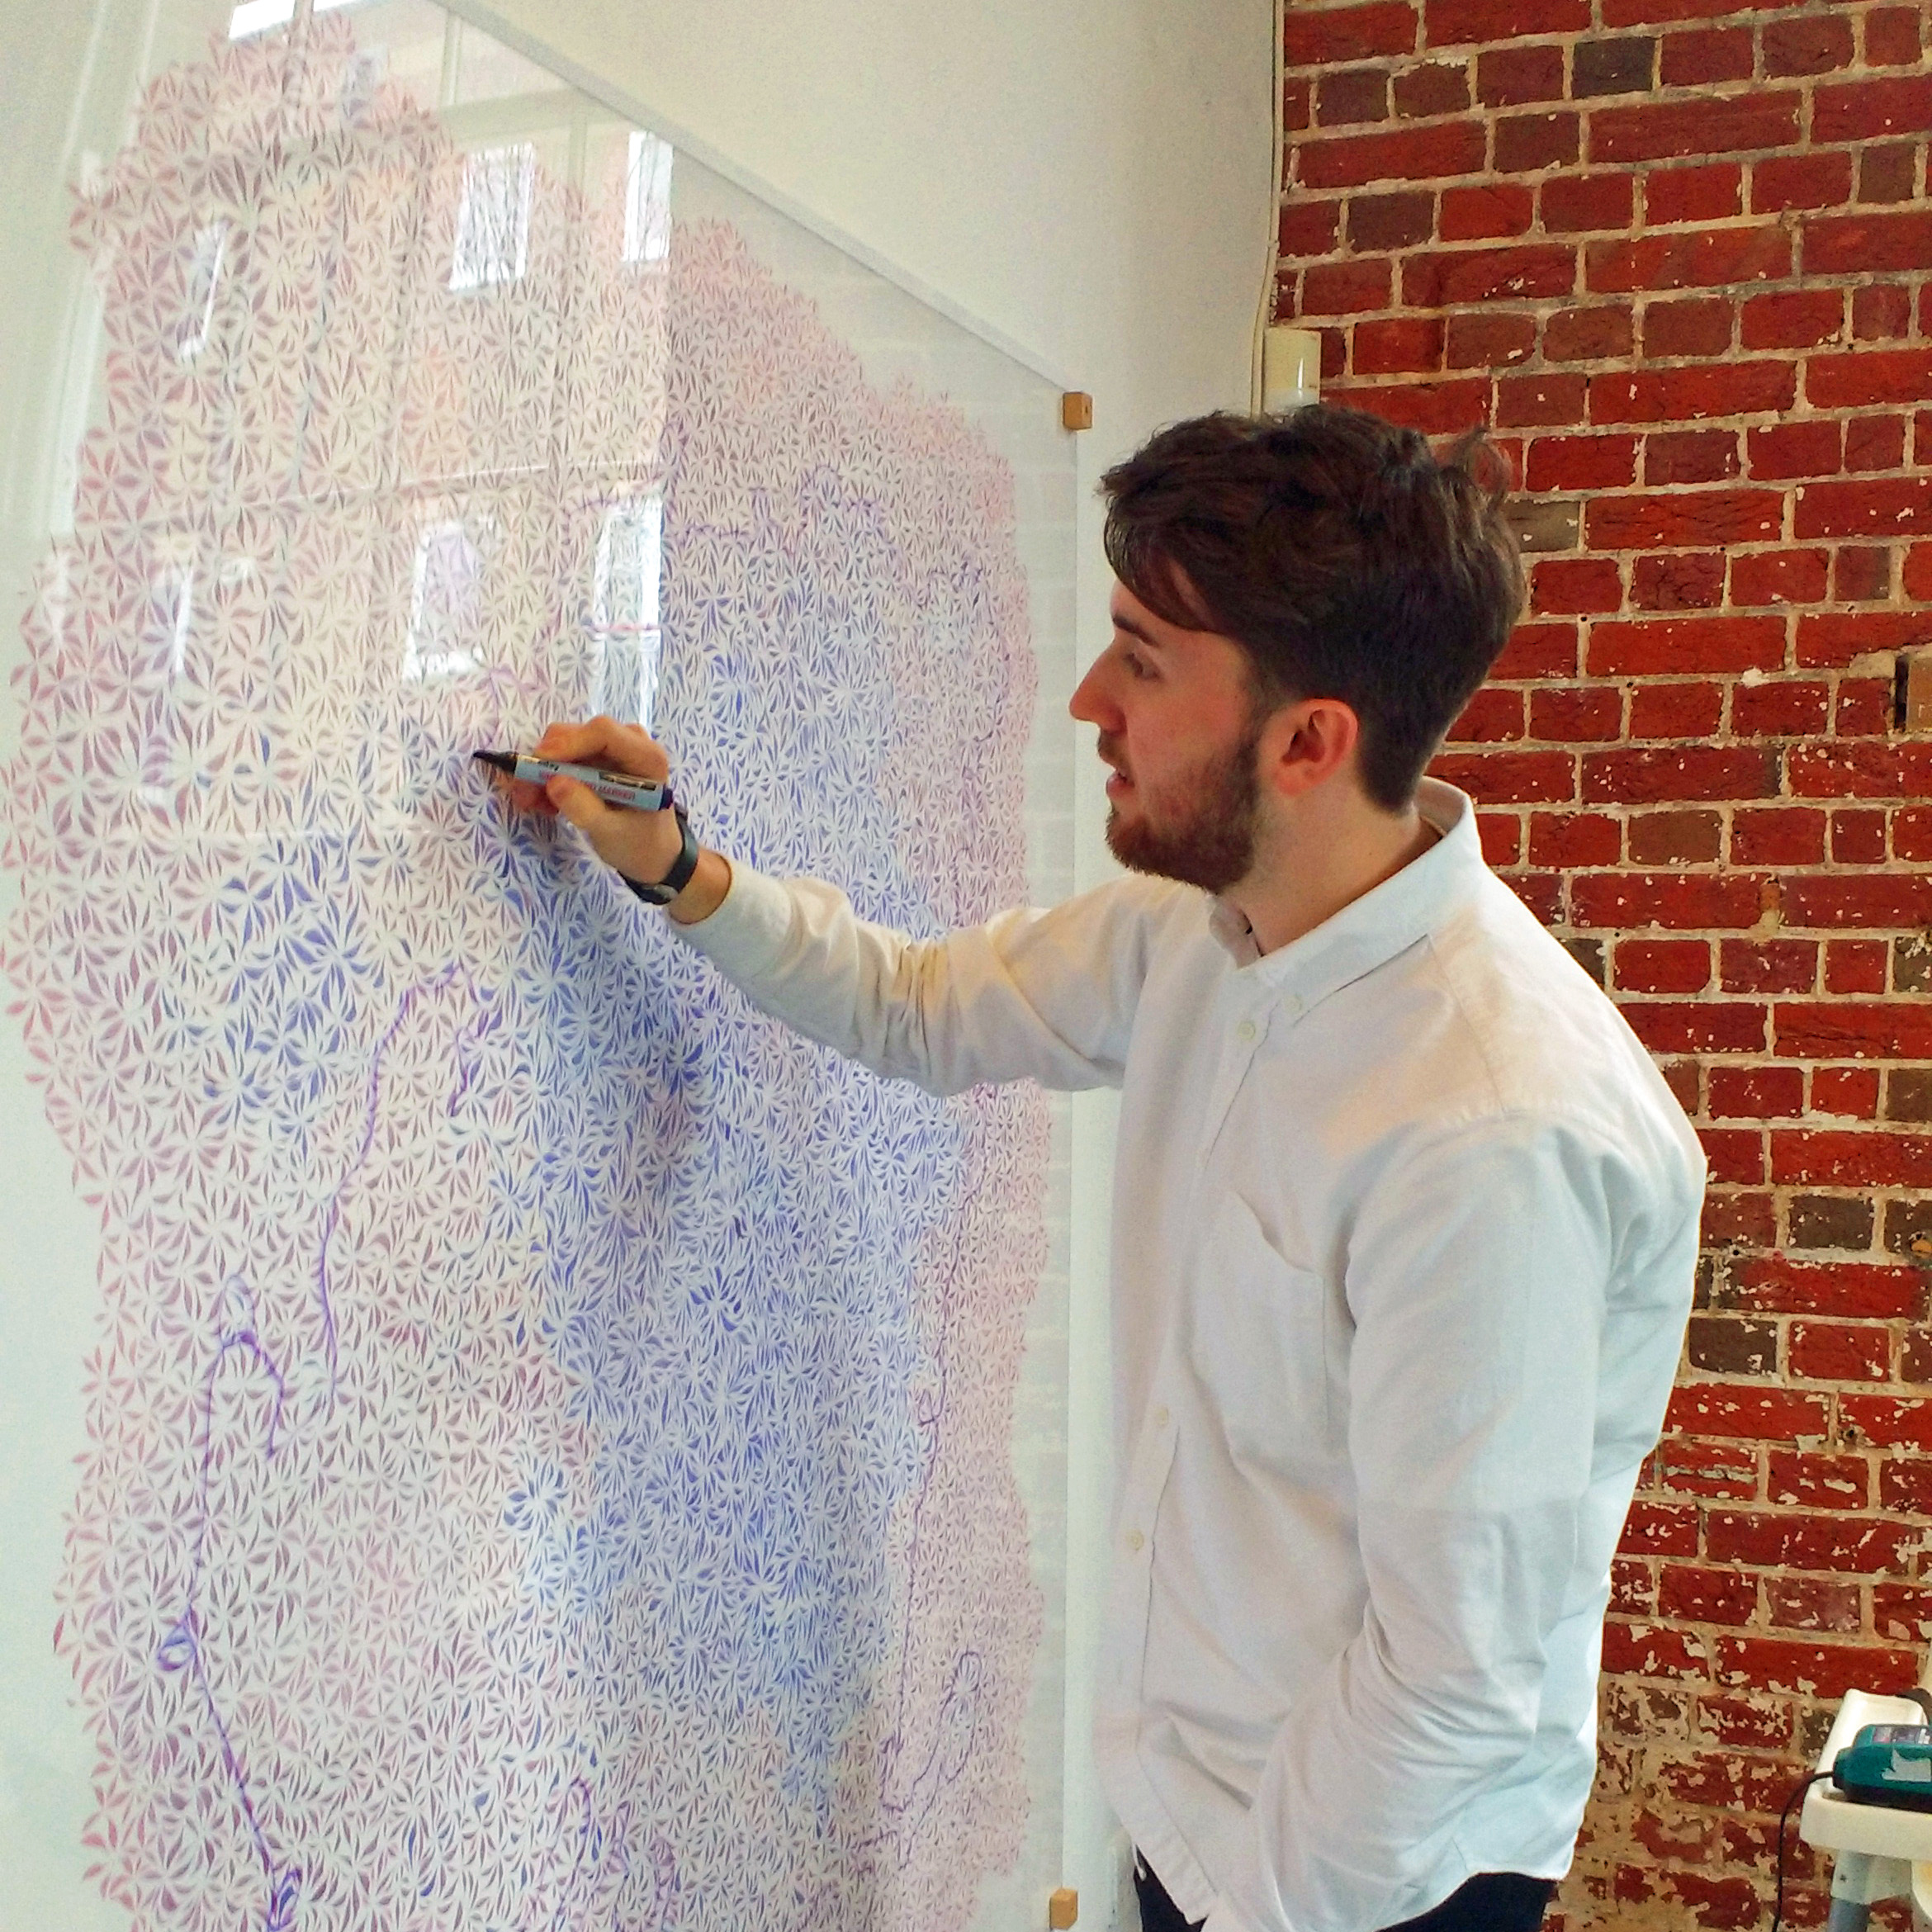 Image description; a person in an art gallery drawing over a large abstract pattern in dry wipe pen. The pattern is under a perspex sheet, so the pen can be wiped off afterwards